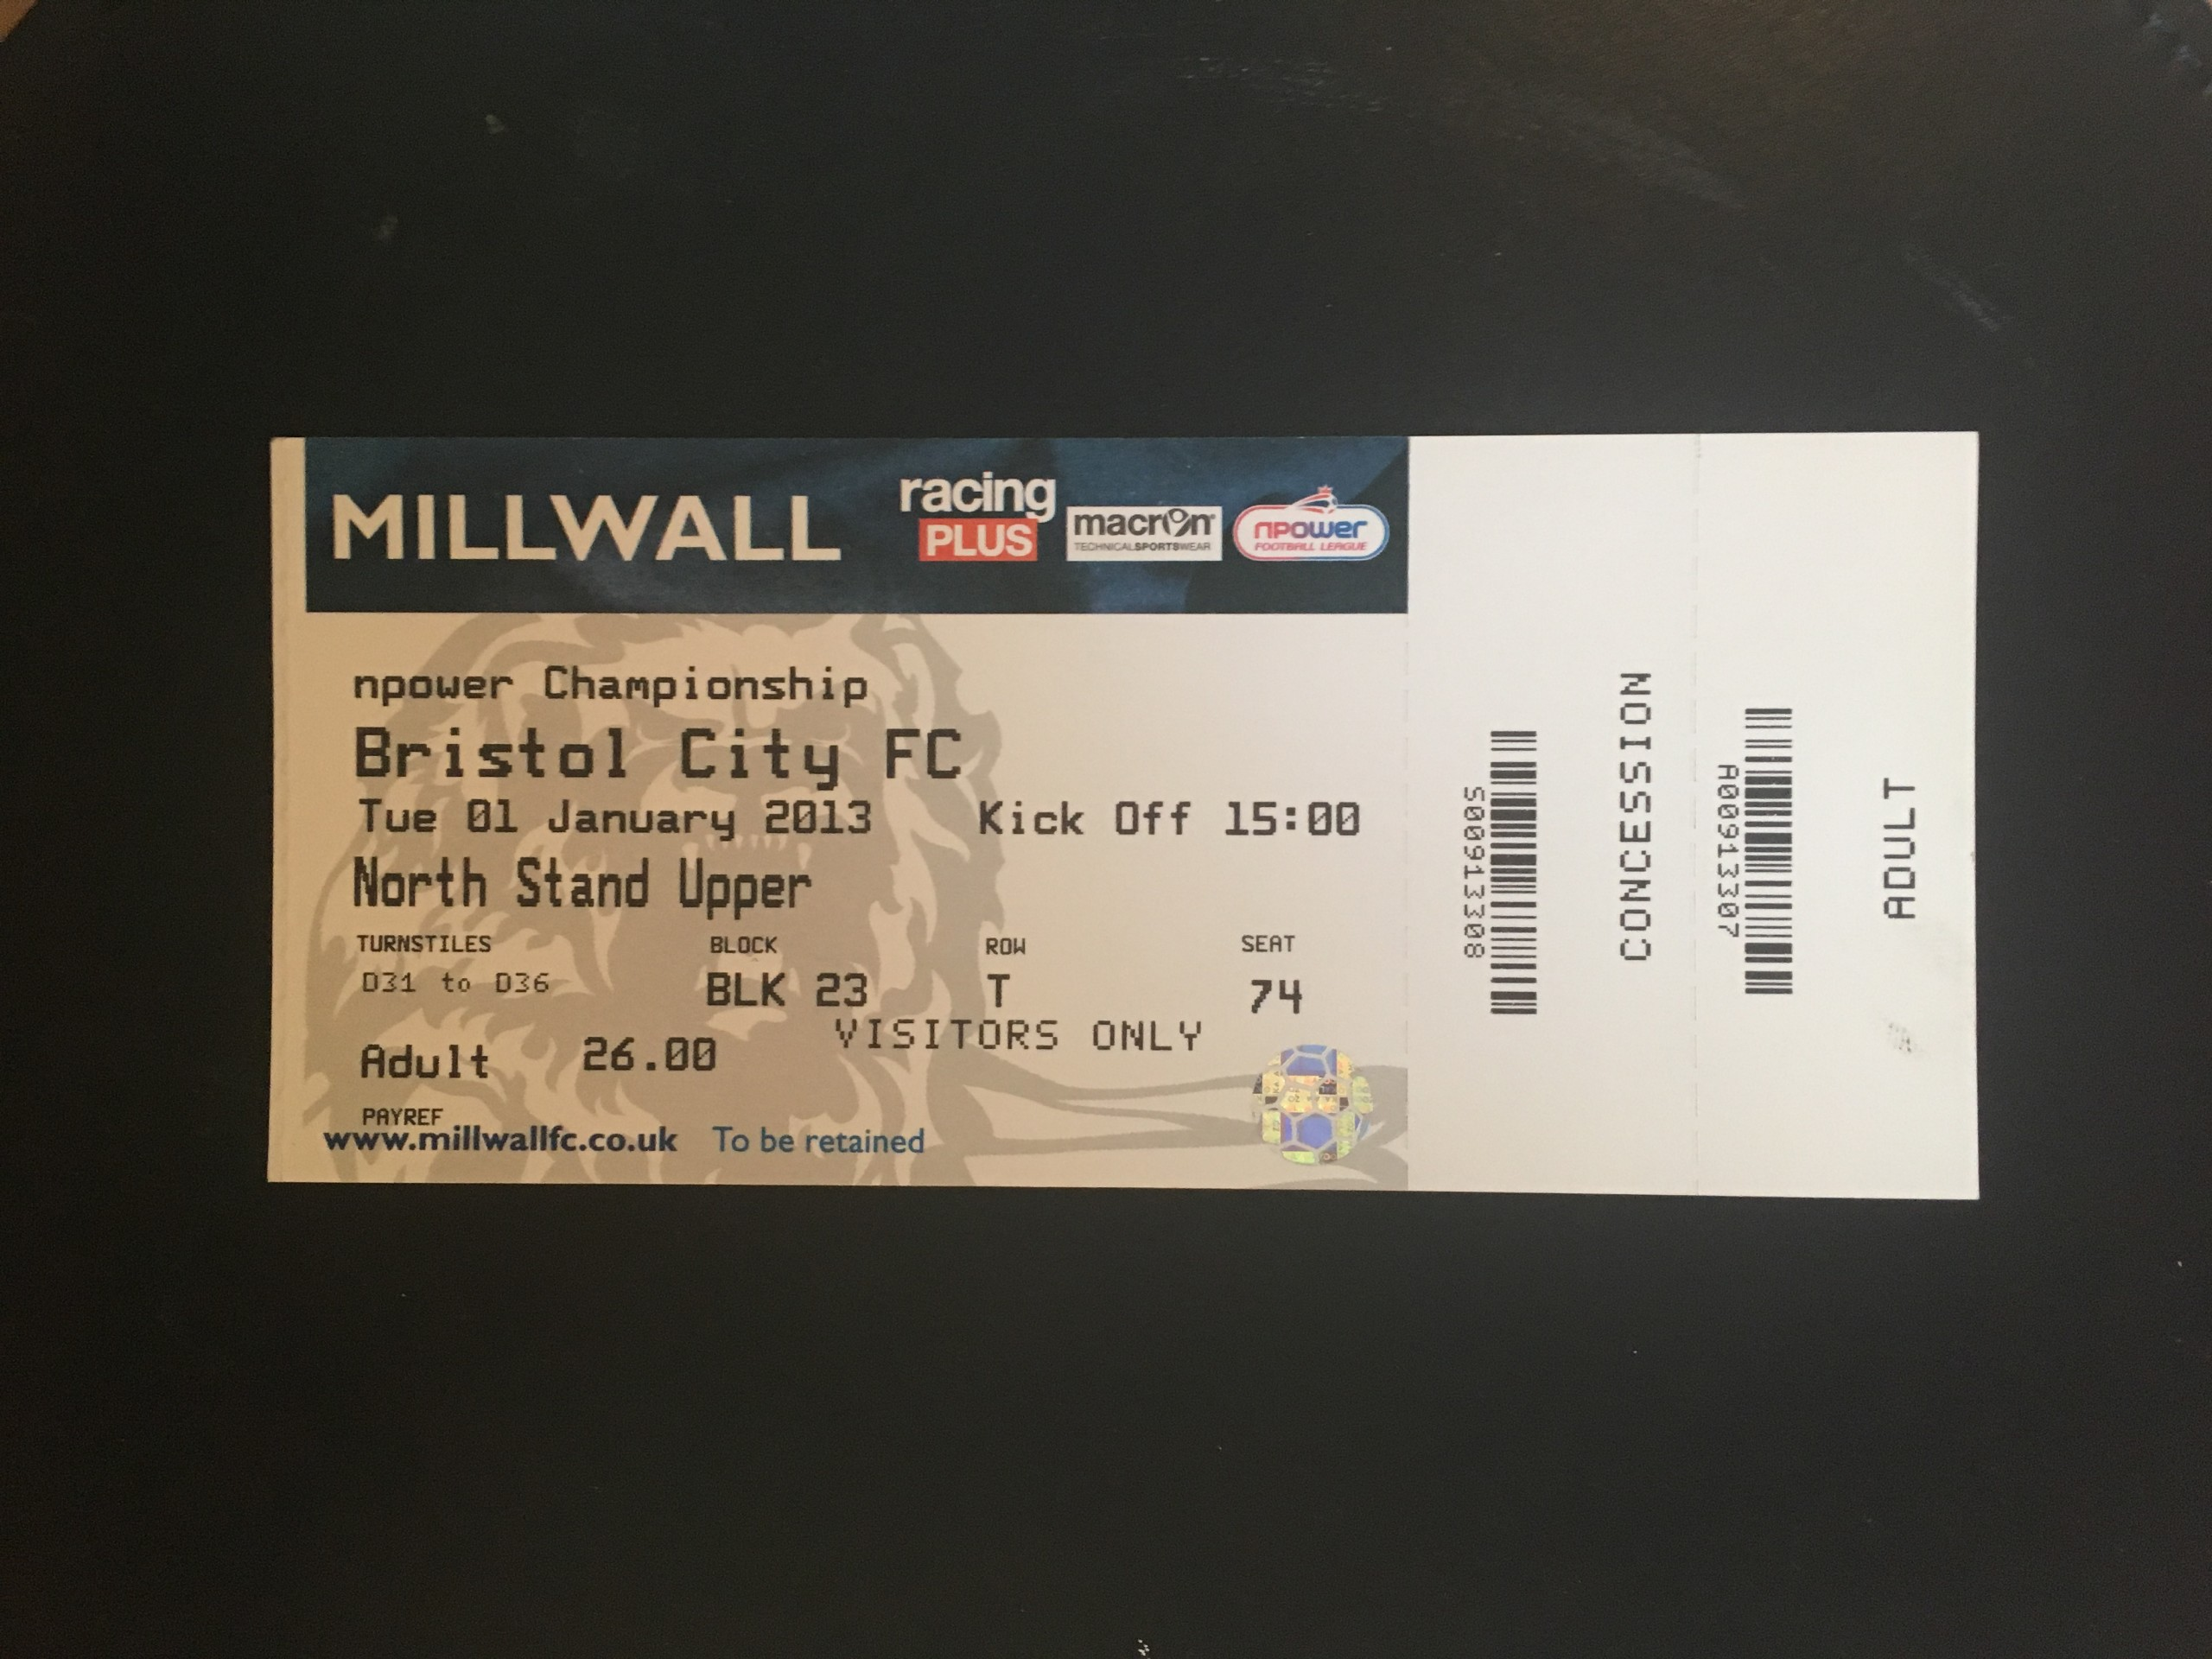 Millwall v Bristol City 01-01-13 Ticket